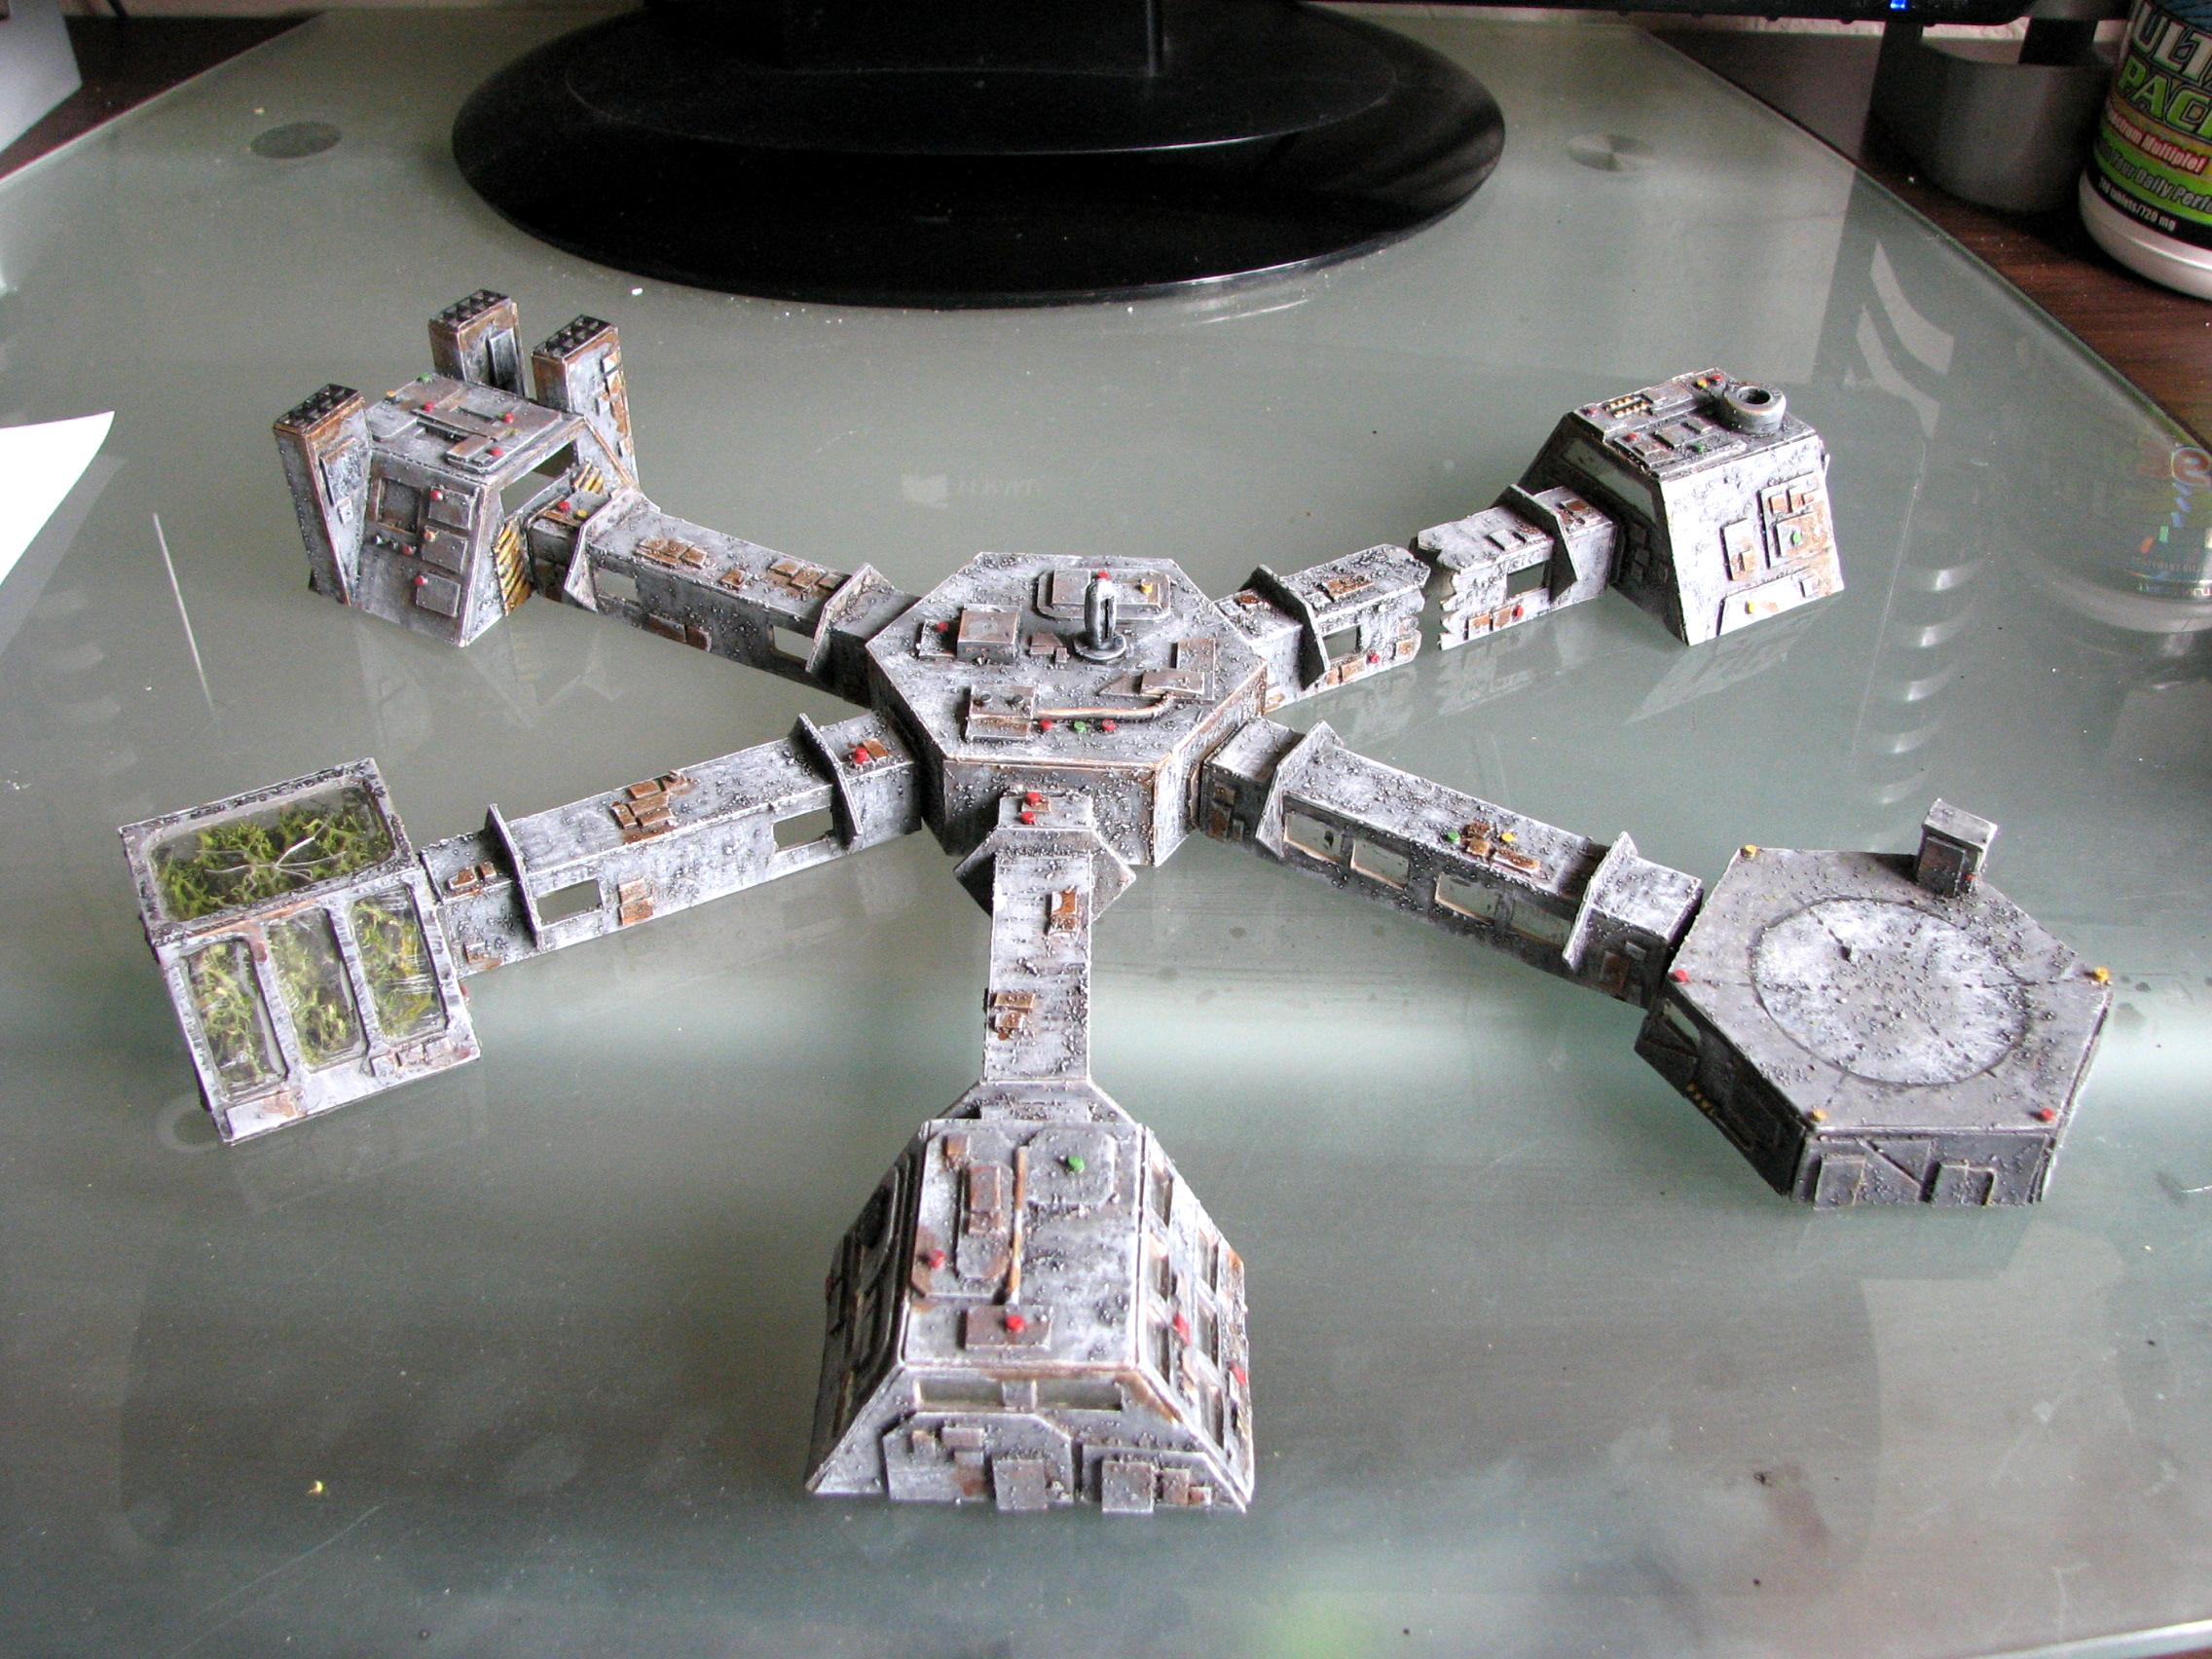 6mm, Modular, Space Station